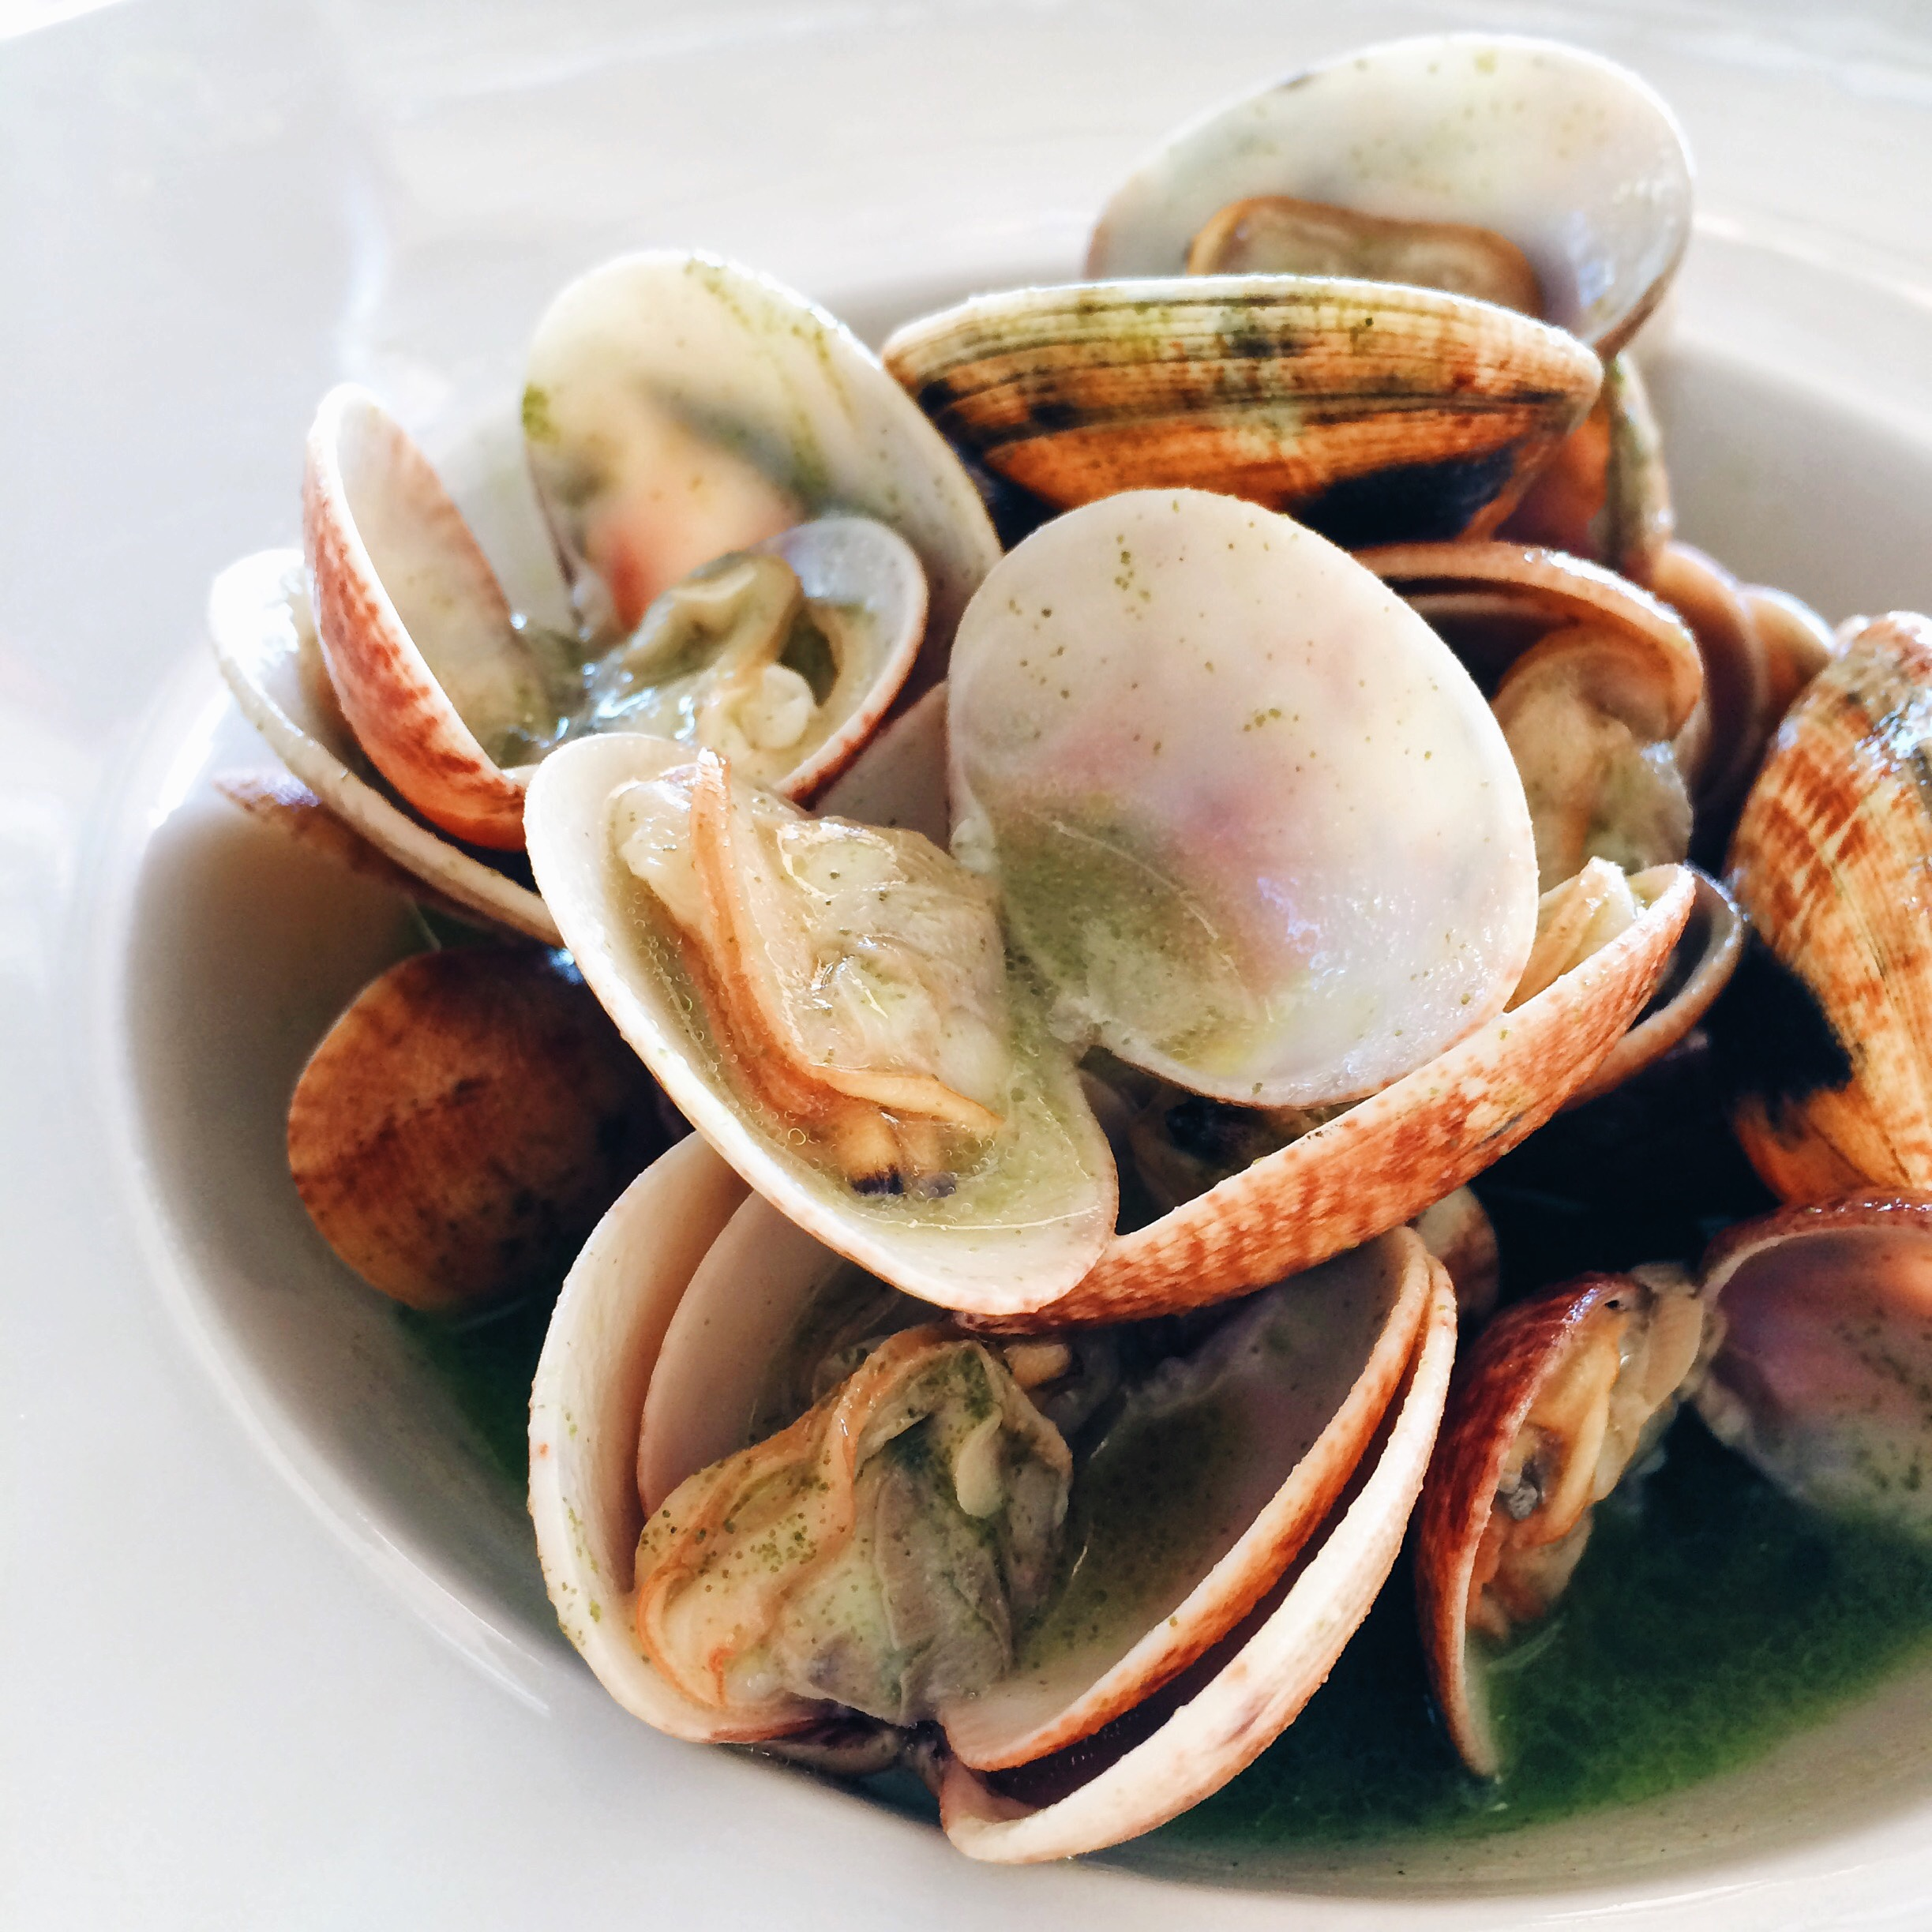 Clams at Bahia Mediterraneo in Palma de Mallorca